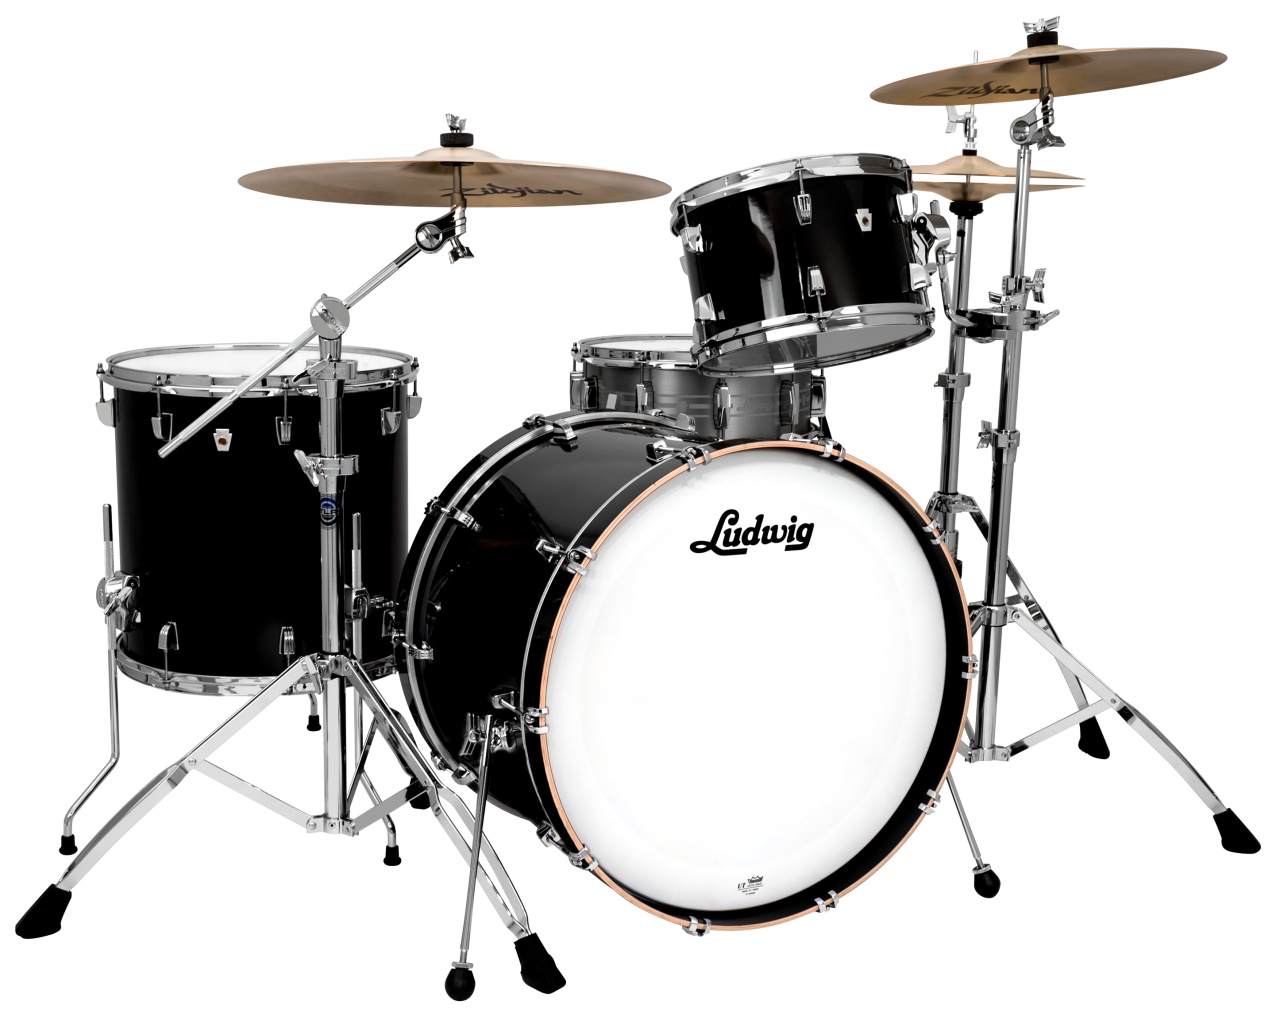 acoustic drum kits ludwig neusonic 20 39 39 3 piece shell pack black cortex. Black Bedroom Furniture Sets. Home Design Ideas